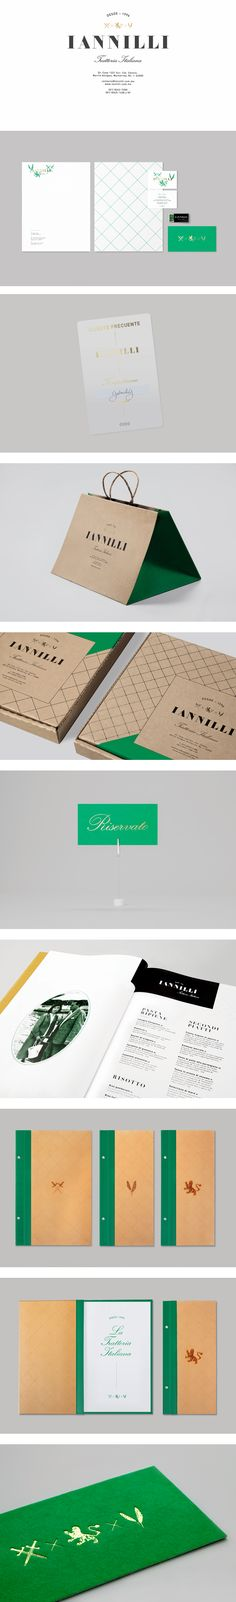 IANNILLI | Saavy Studio #packaging #branding #marketing PD